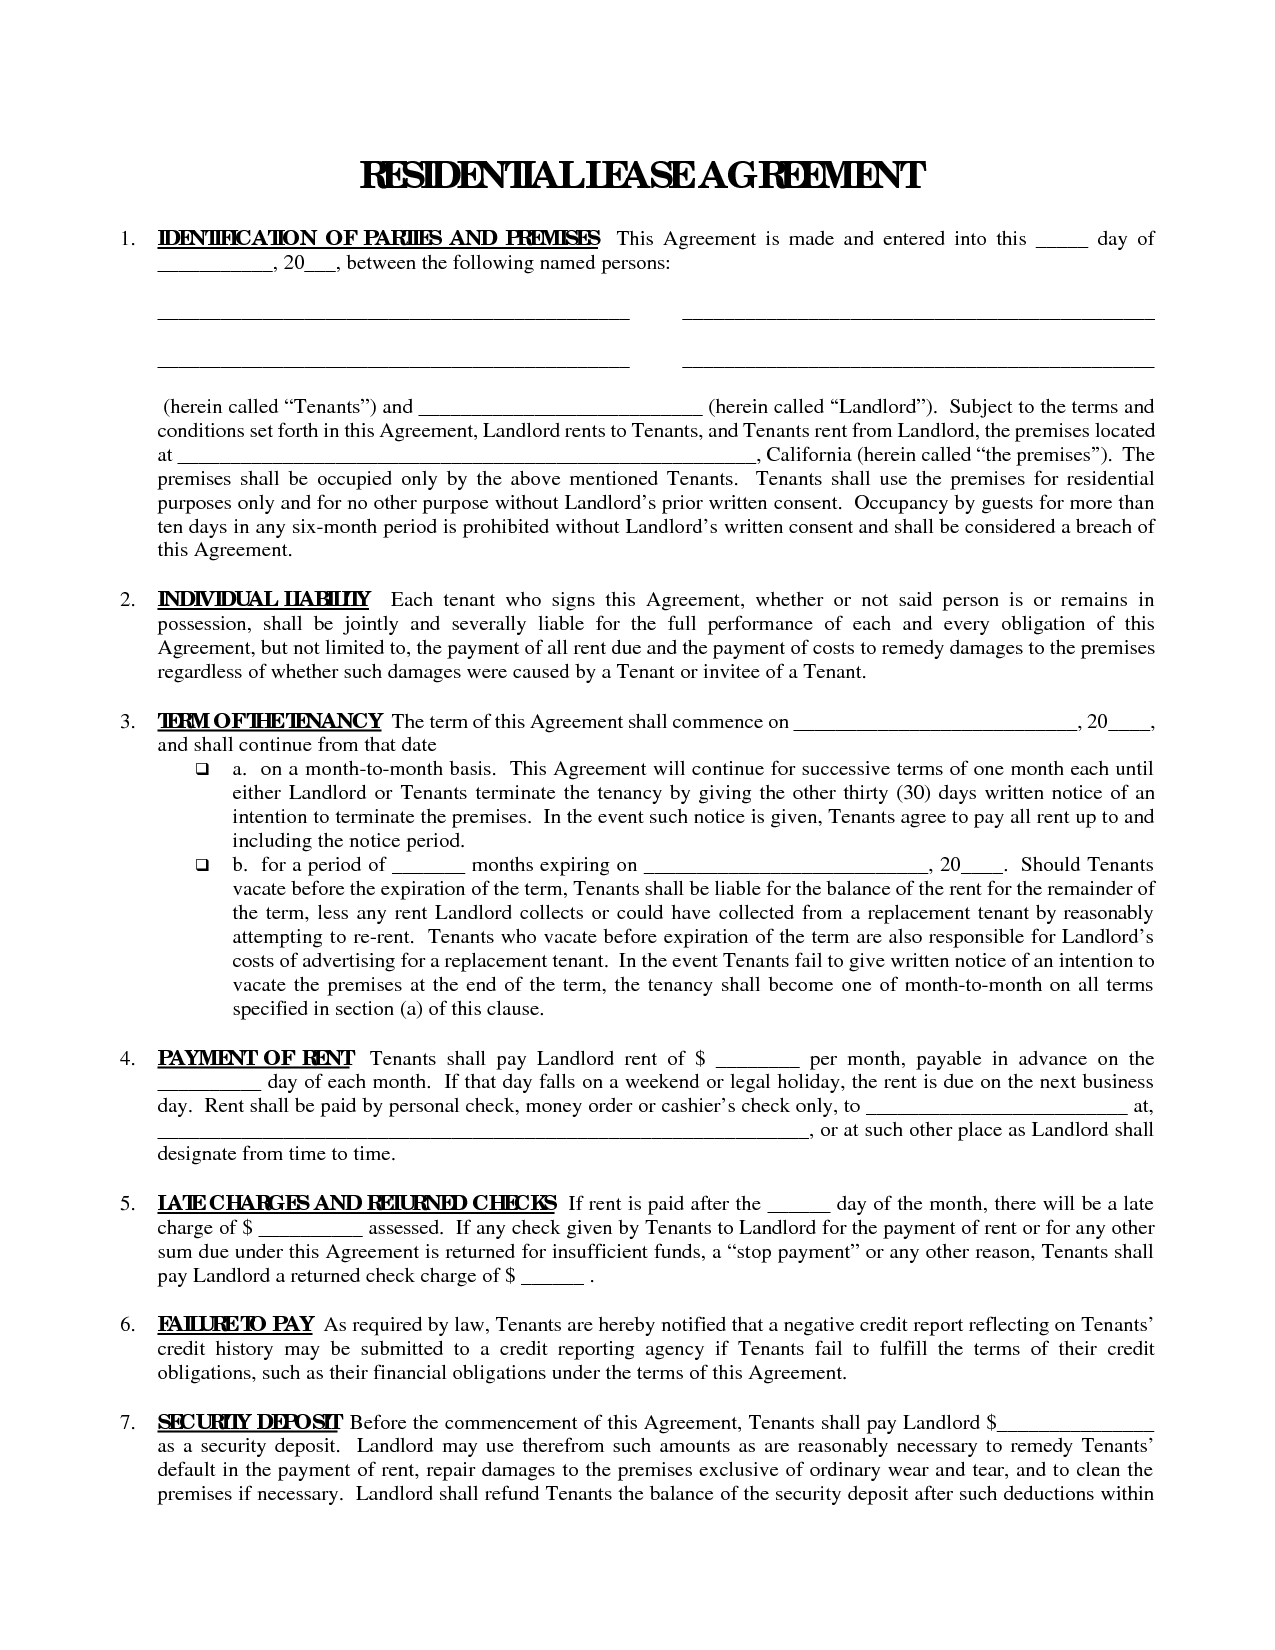 Printable Residential Free House Lease Agreement | Residential Lease  Agreement: Real Estate Legal Form  House Lease Agreement Format